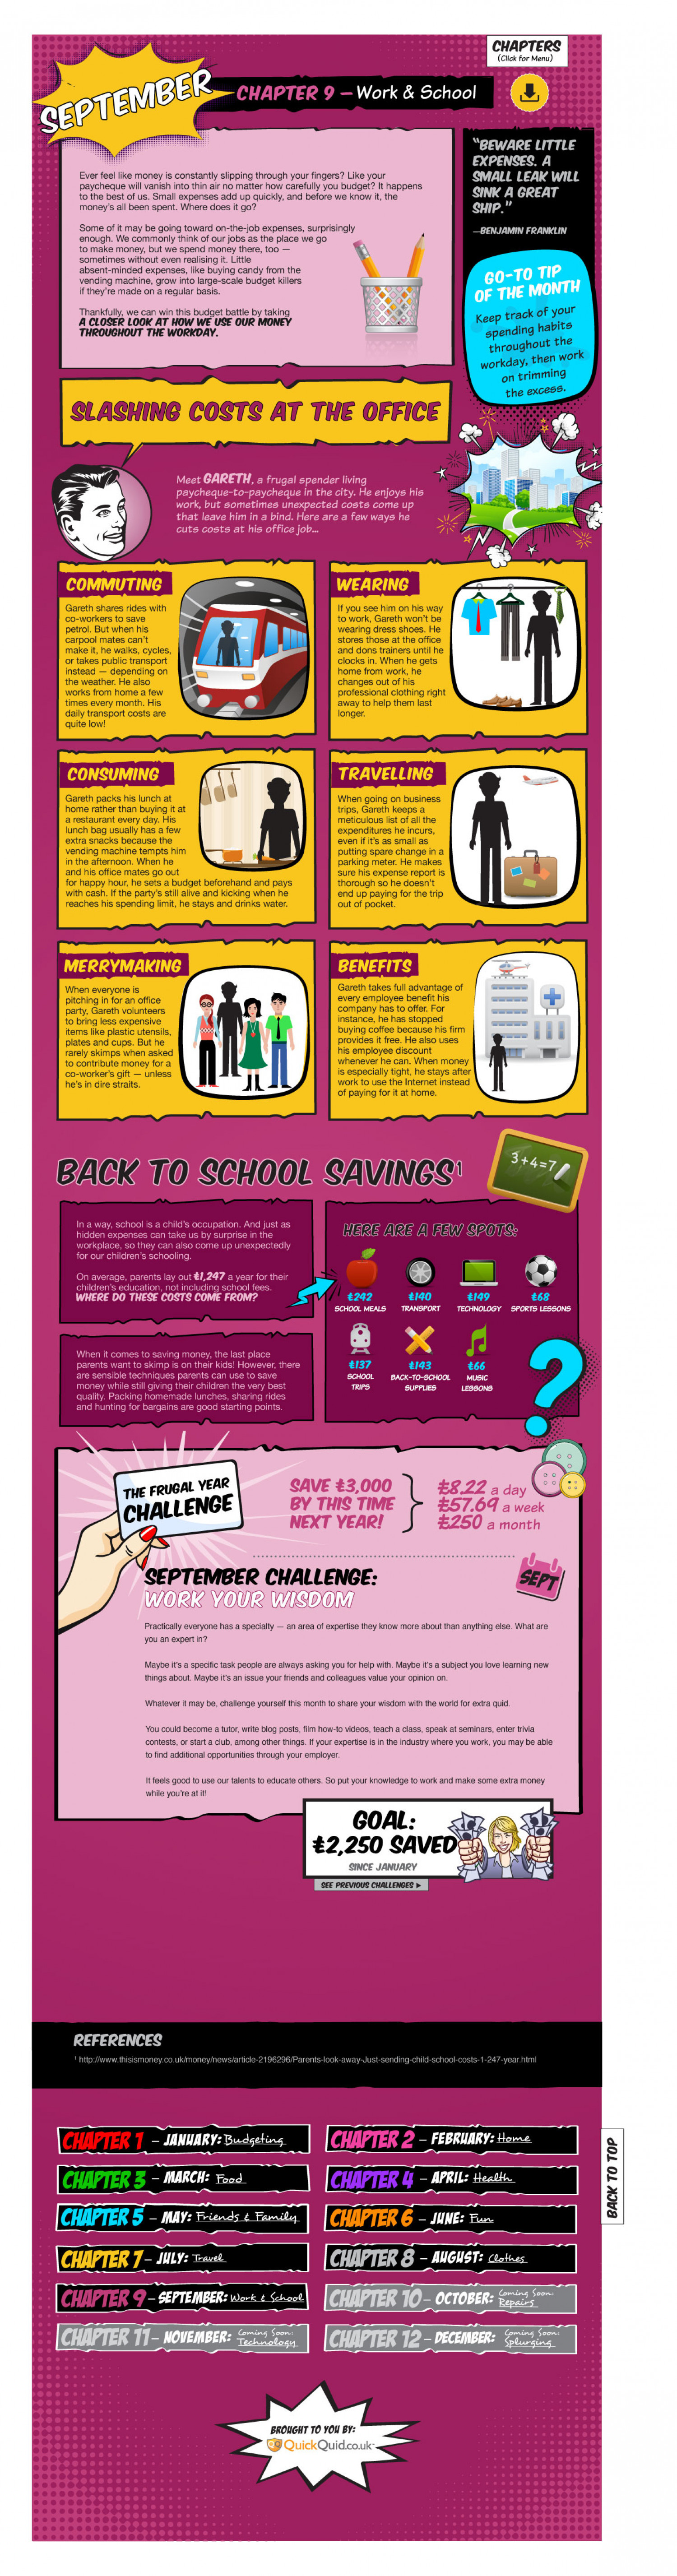 Chapter 9 of The Frugal Living Handbook: Work & School Infographic